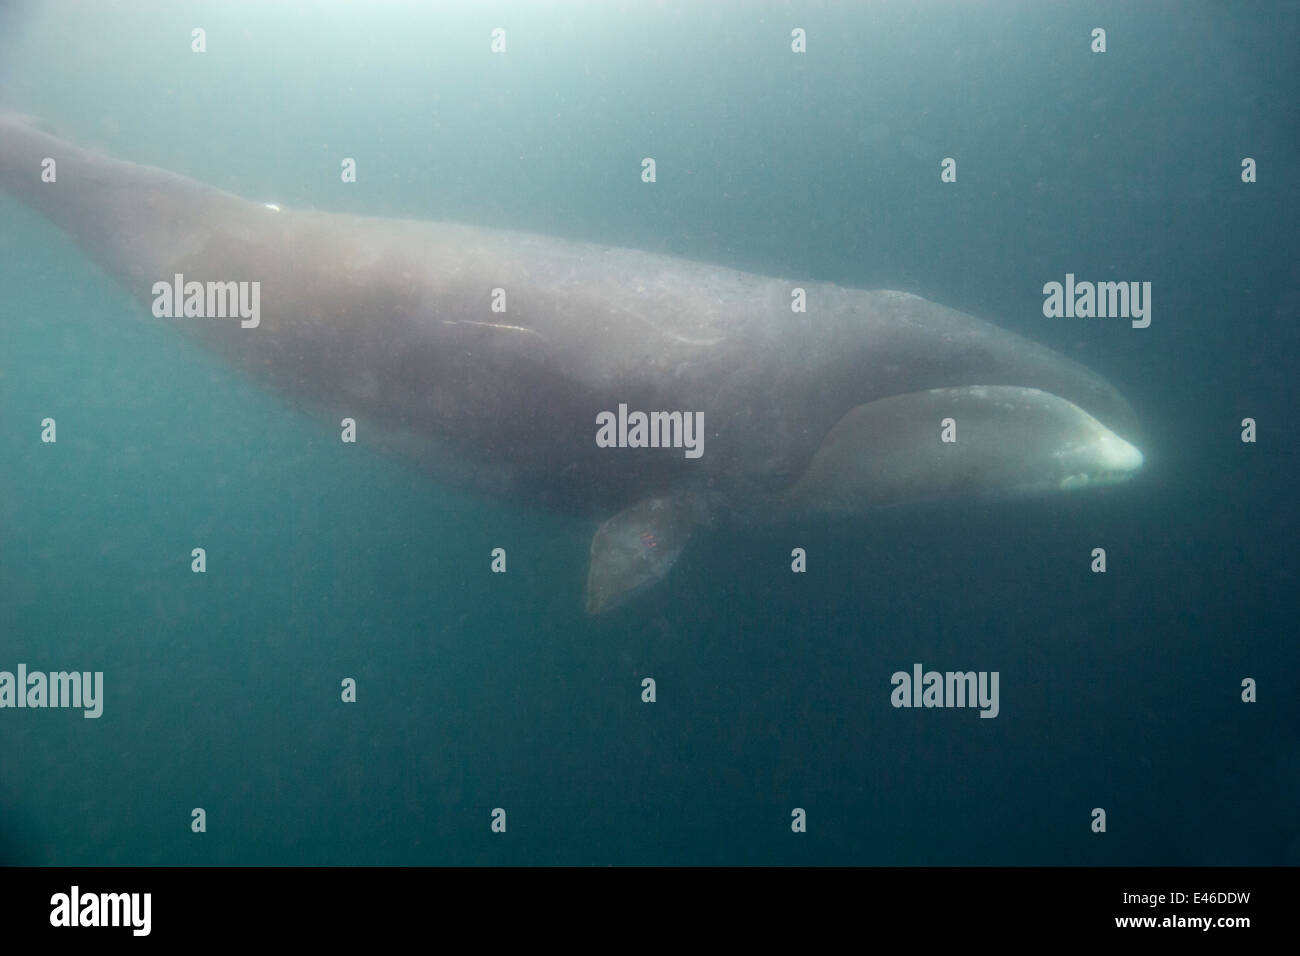 Bowhead Whale (Balaena mysticetus) diving from the surface to feed on shrimp-like crustaceans and small fish under - Stock Image